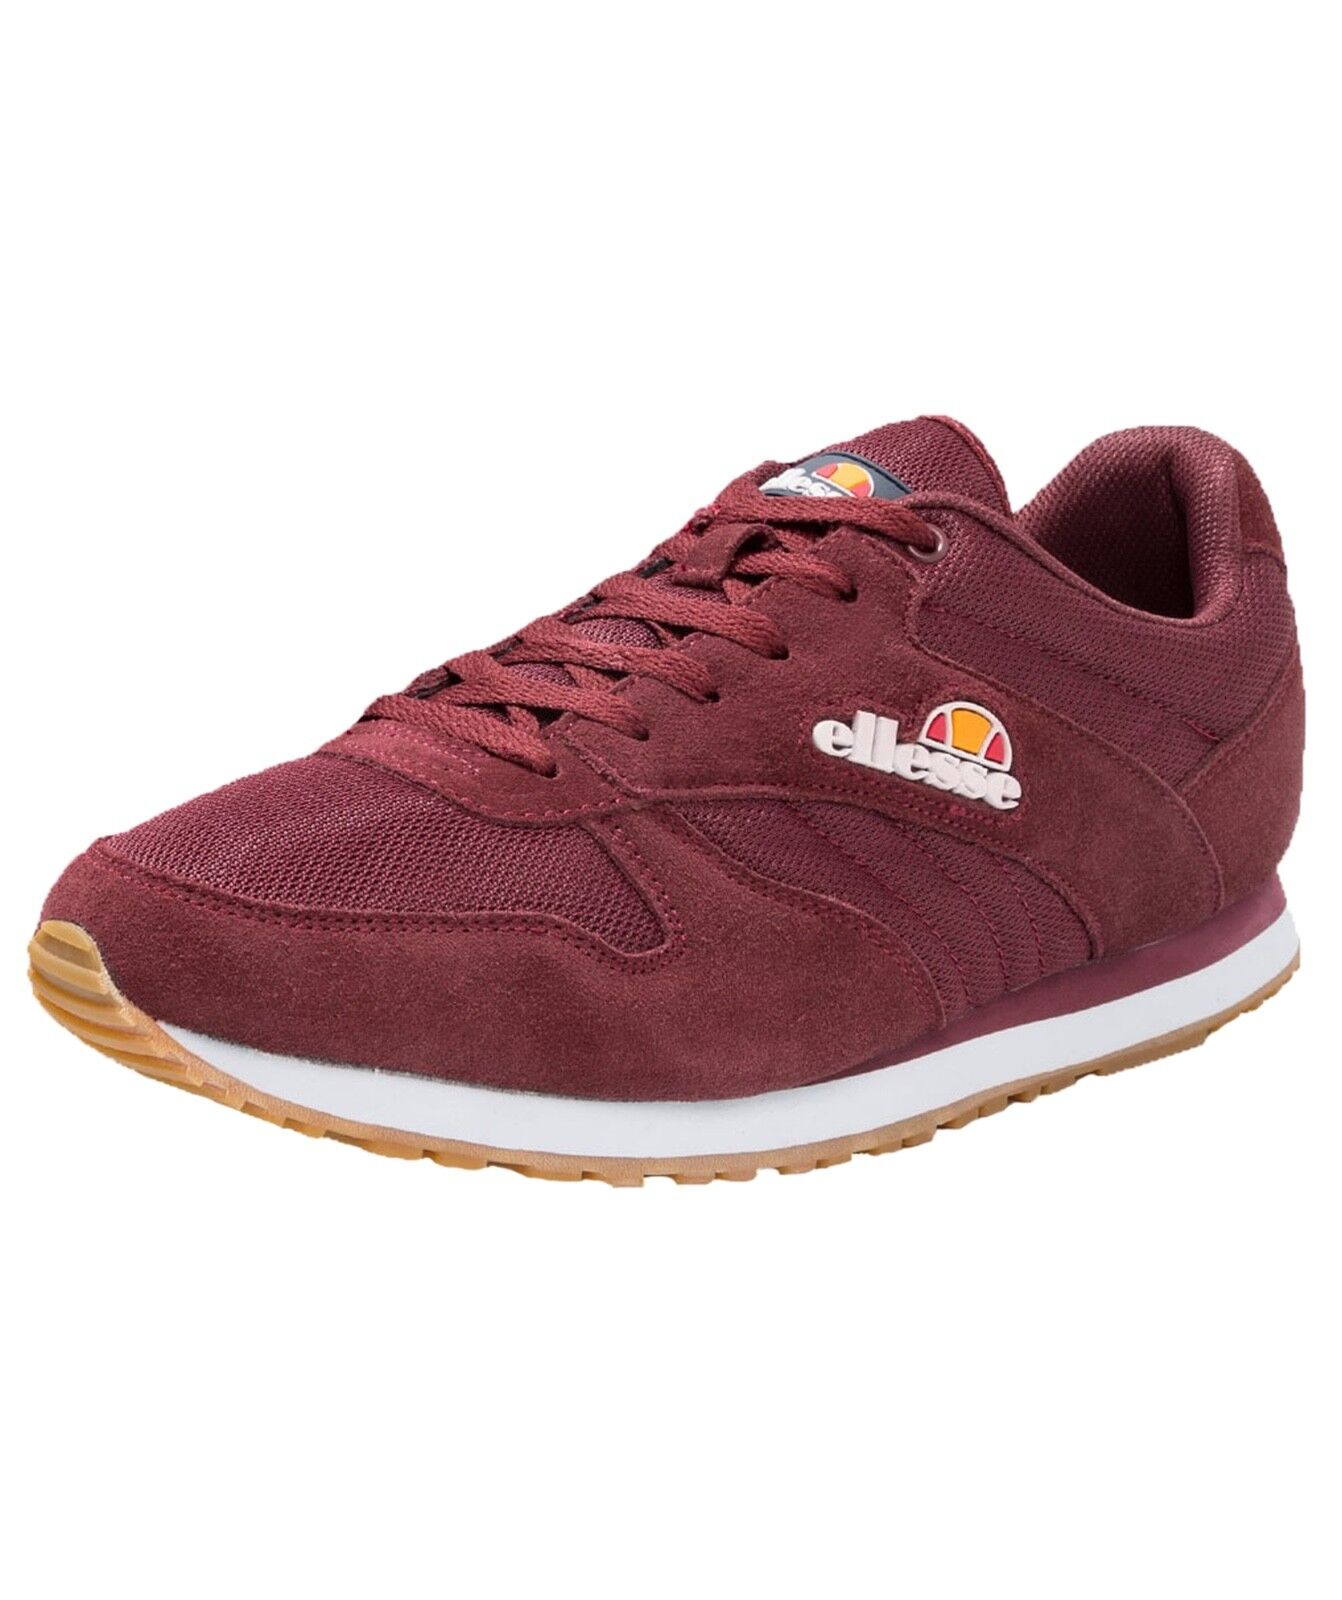 Ellesse Runner Low Canvas Fashion Shoes Casual Trainers Suede Burgundy Red